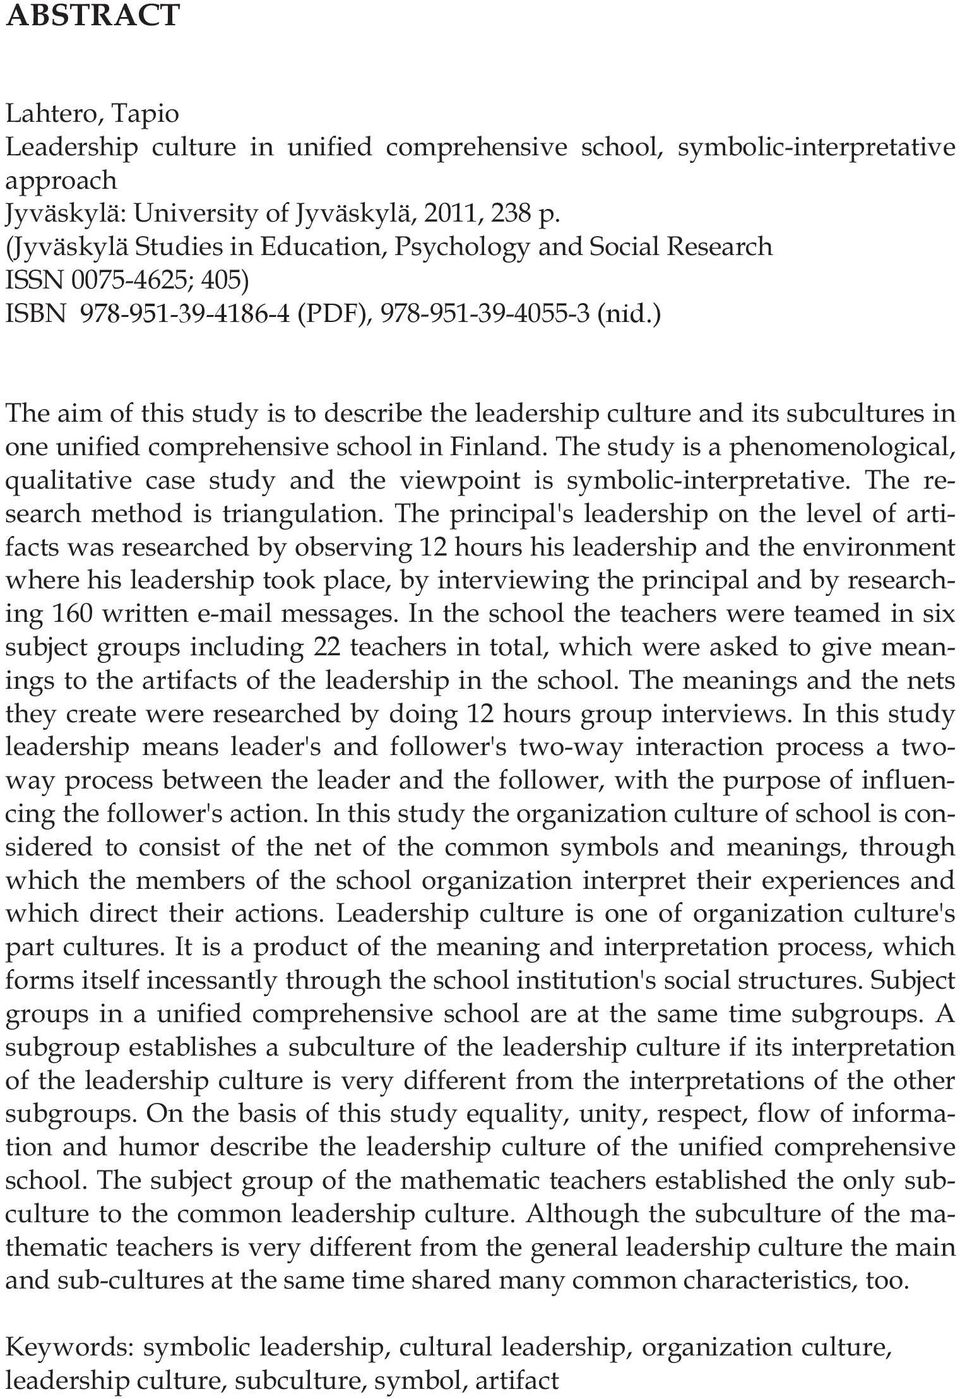 ) The aim of this study is to describe the leadership culture and its subcultures in one unified comprehensive school in Finland.